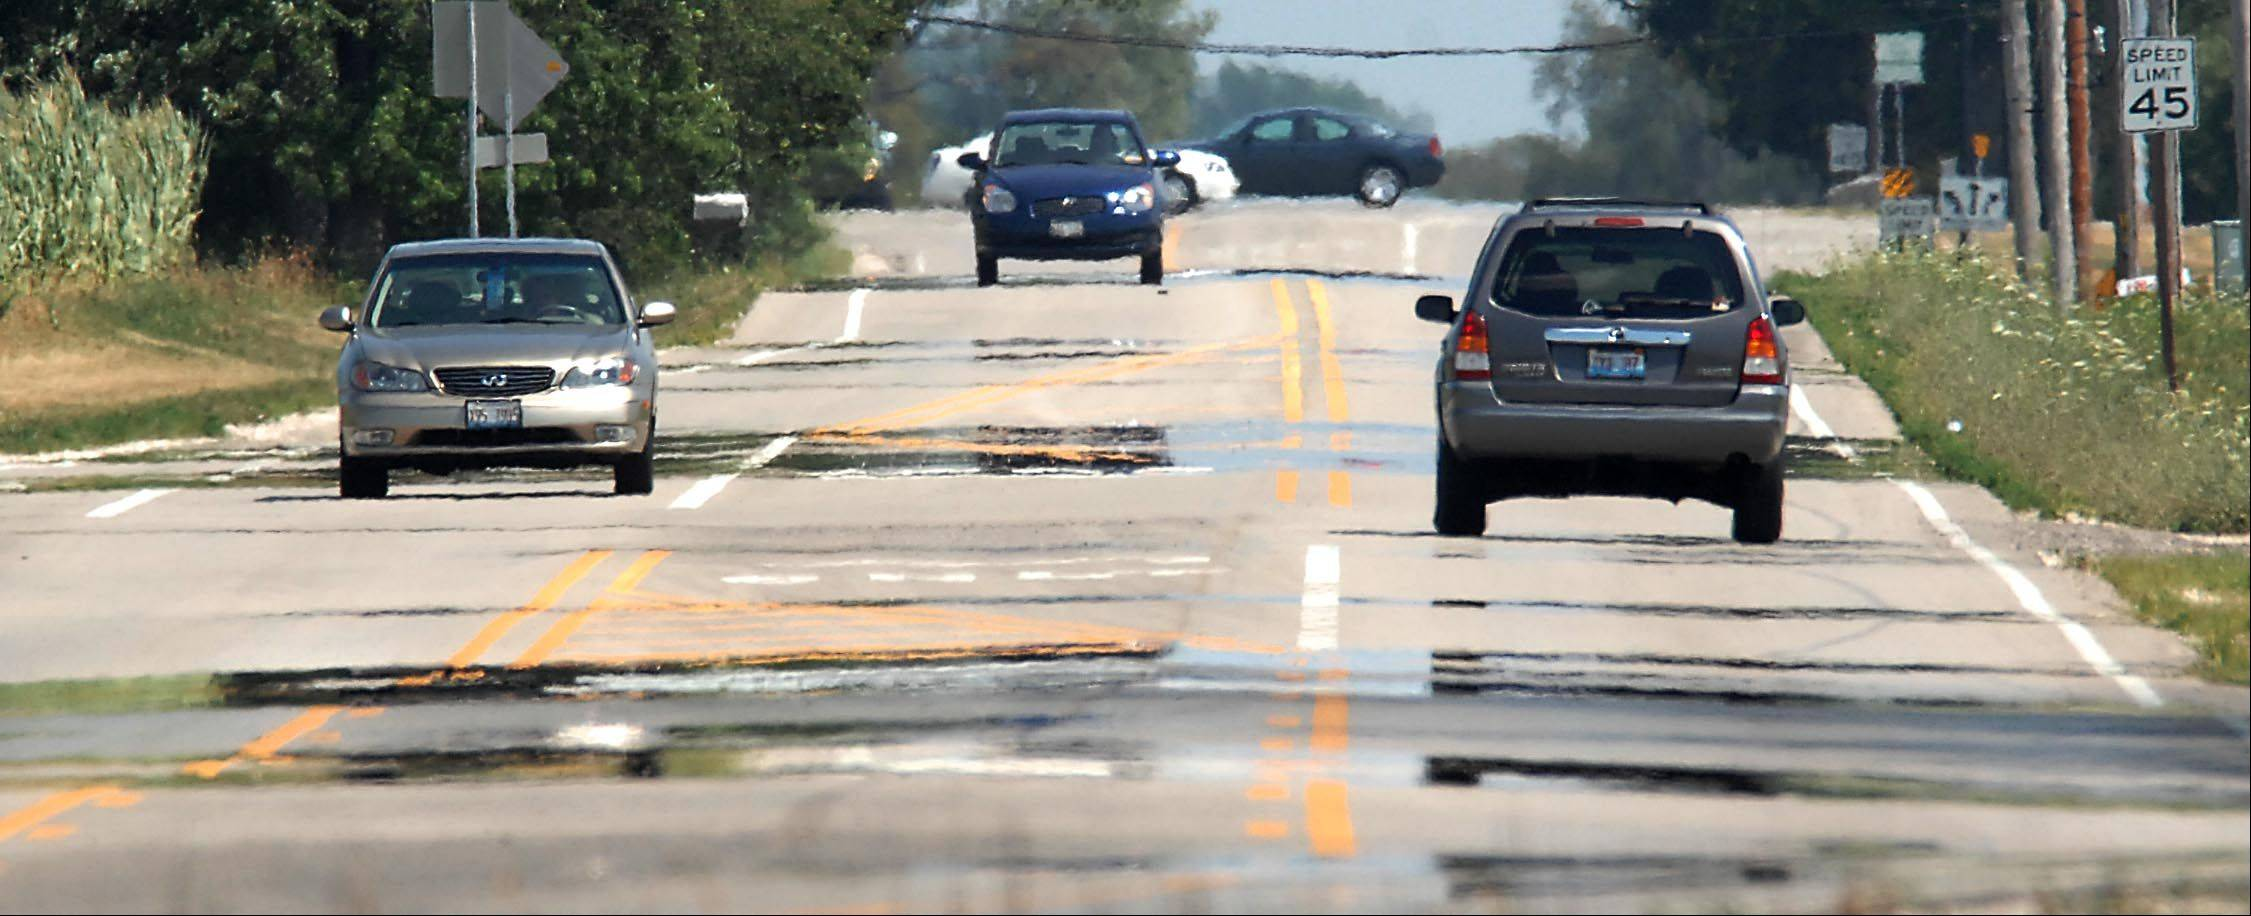 Heat waves form a mirage of puddles on the pavement along Huntley Road near Huntley Tuesday afternoon.